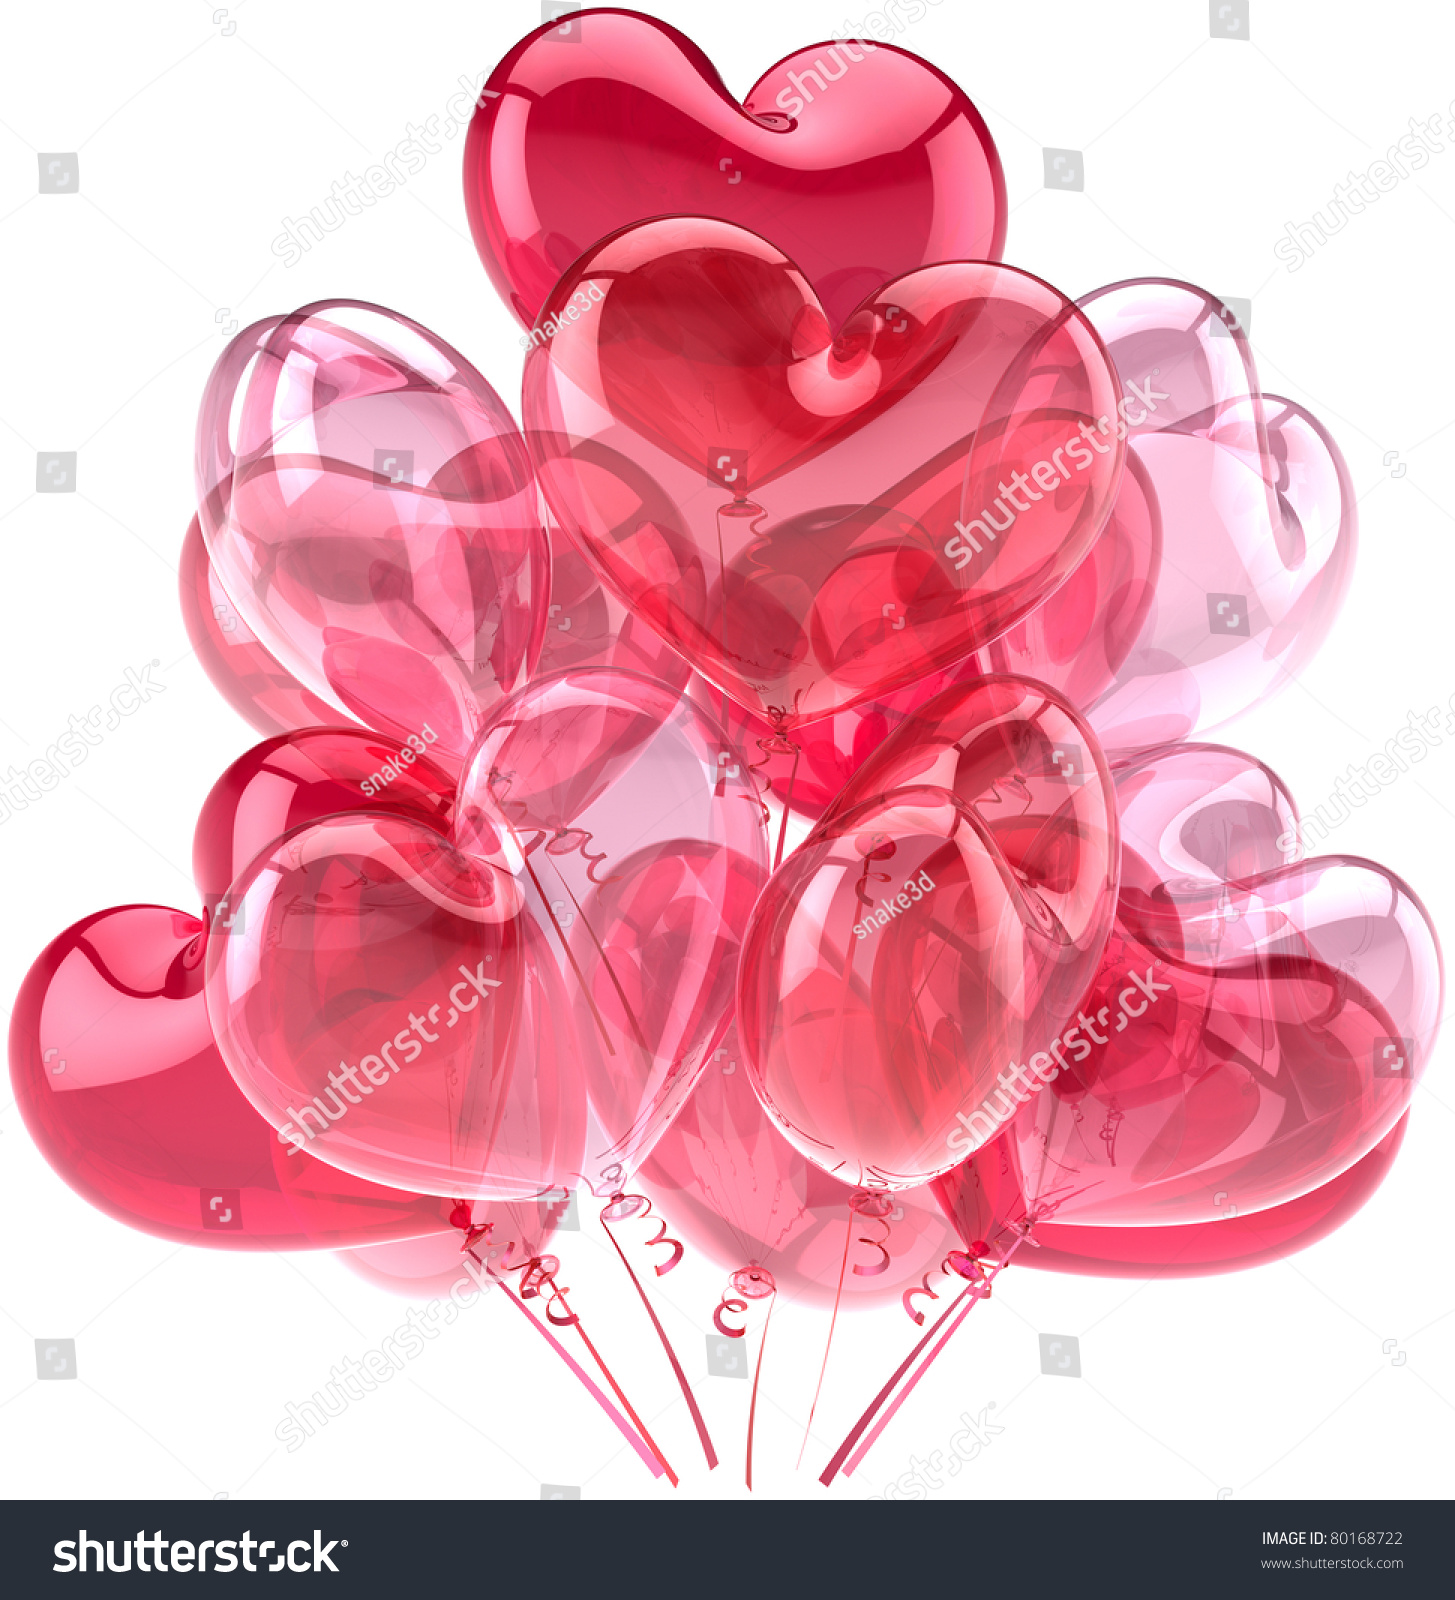 Party Balloons Heart Pink Red Birthday Valentineu0027s Day Romantic Love  Decoration. 14 February Motheru0027s Day